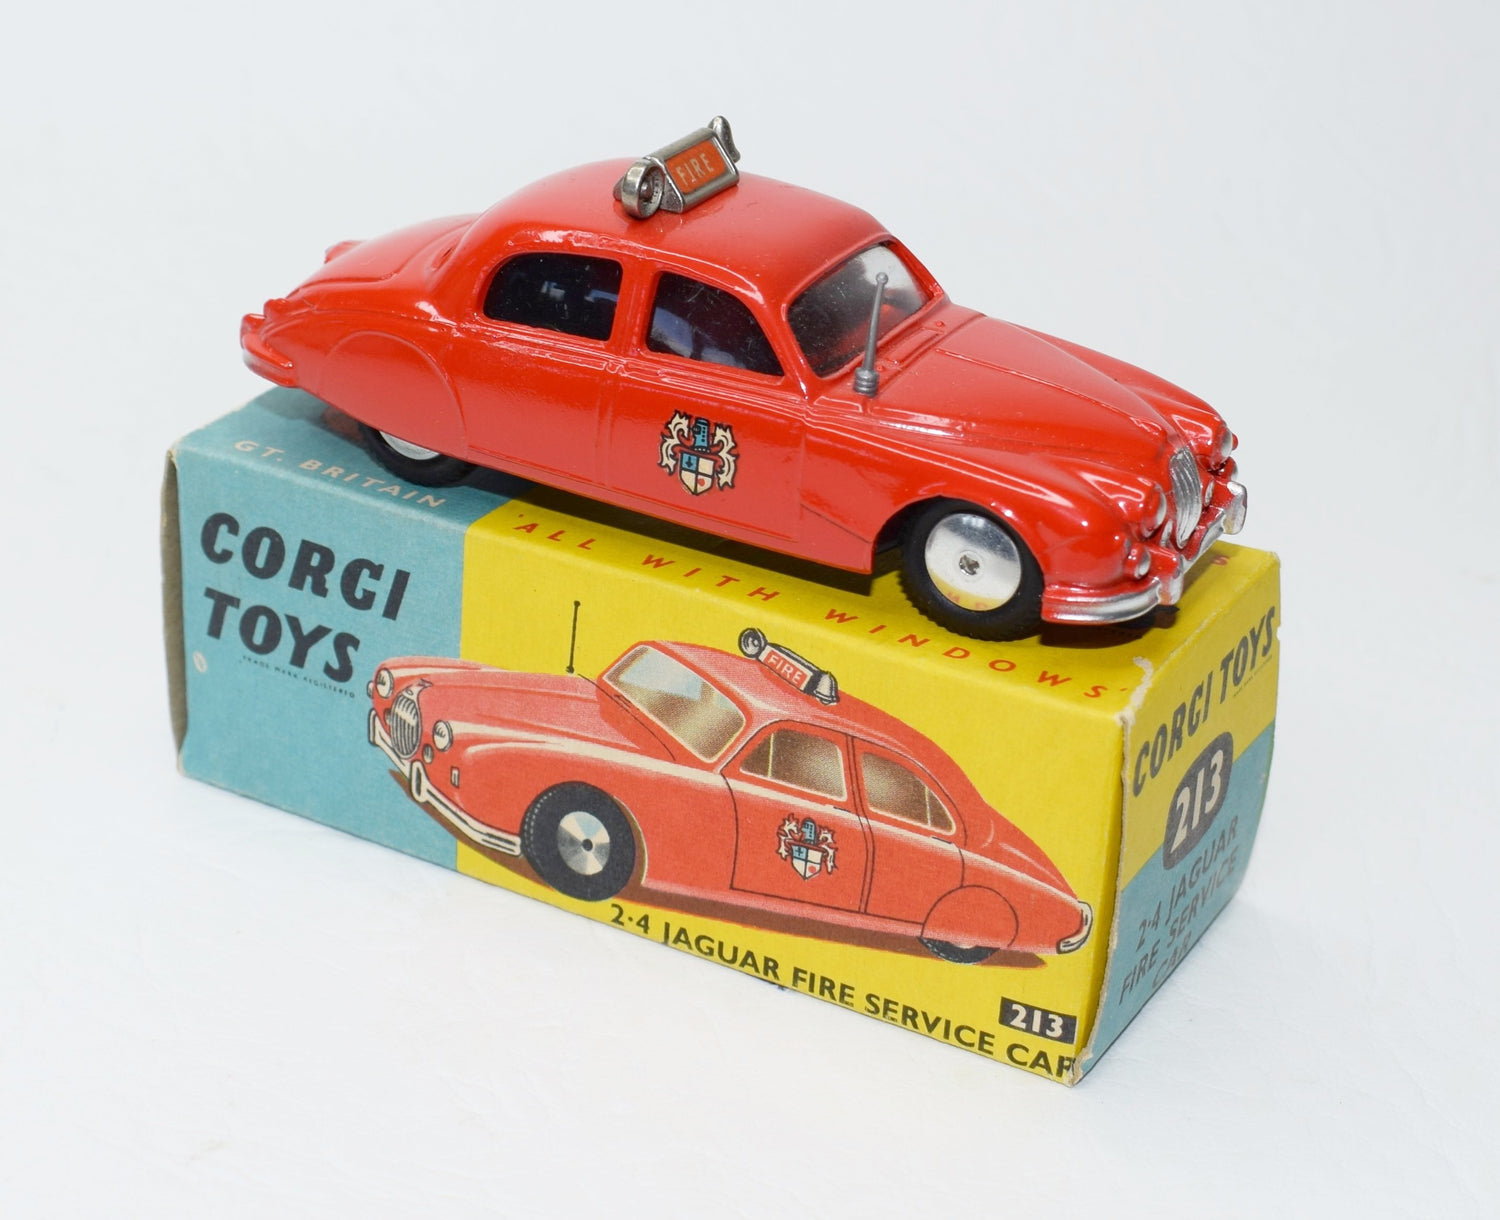 Corgi toys 213 2.4 Jaguar Fire Car Very Near Mint/Boxed (C.C).